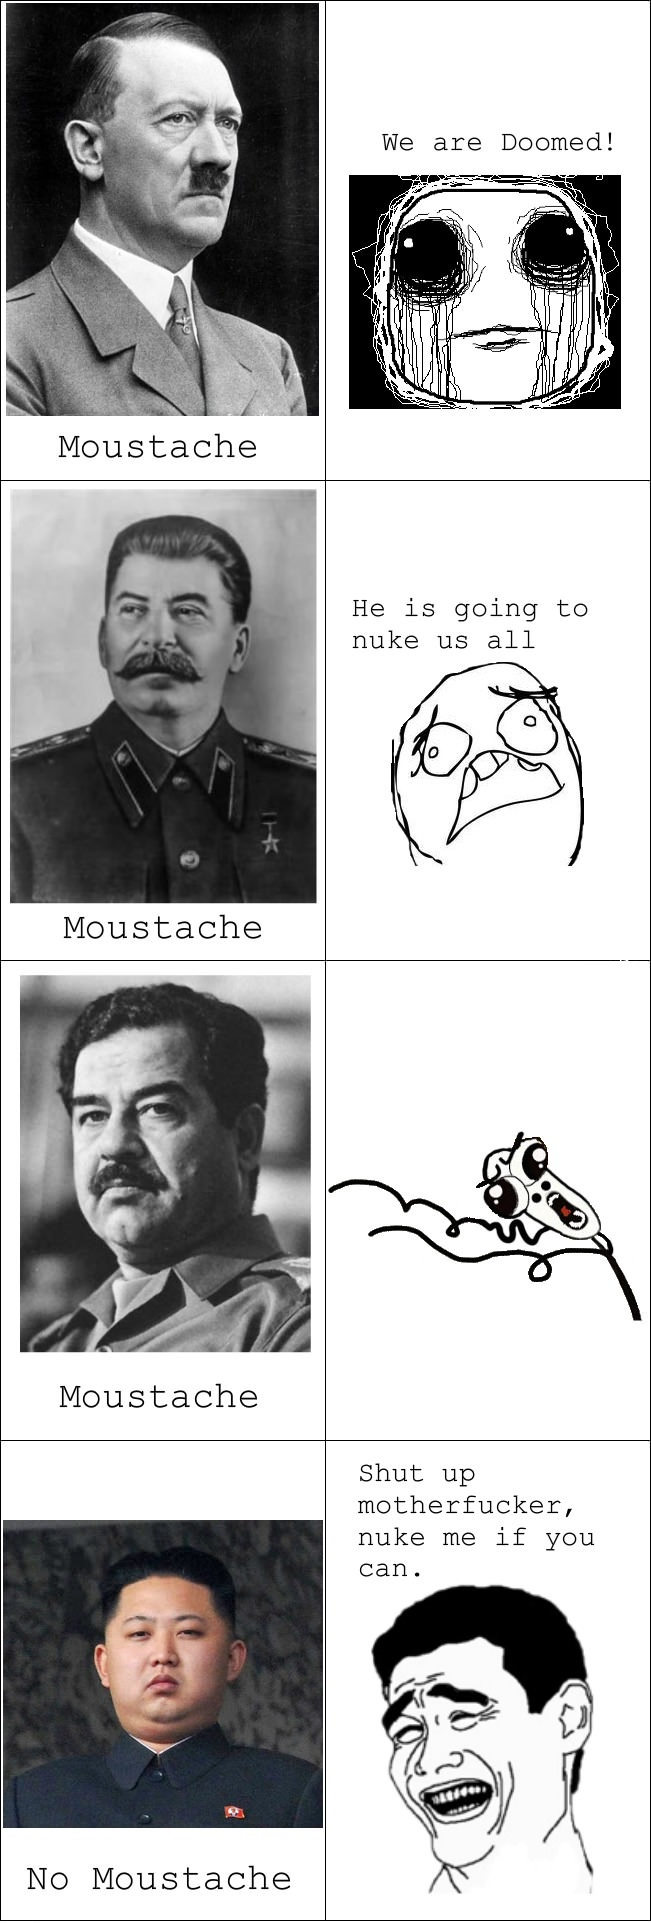 Every dictator needs a moustache